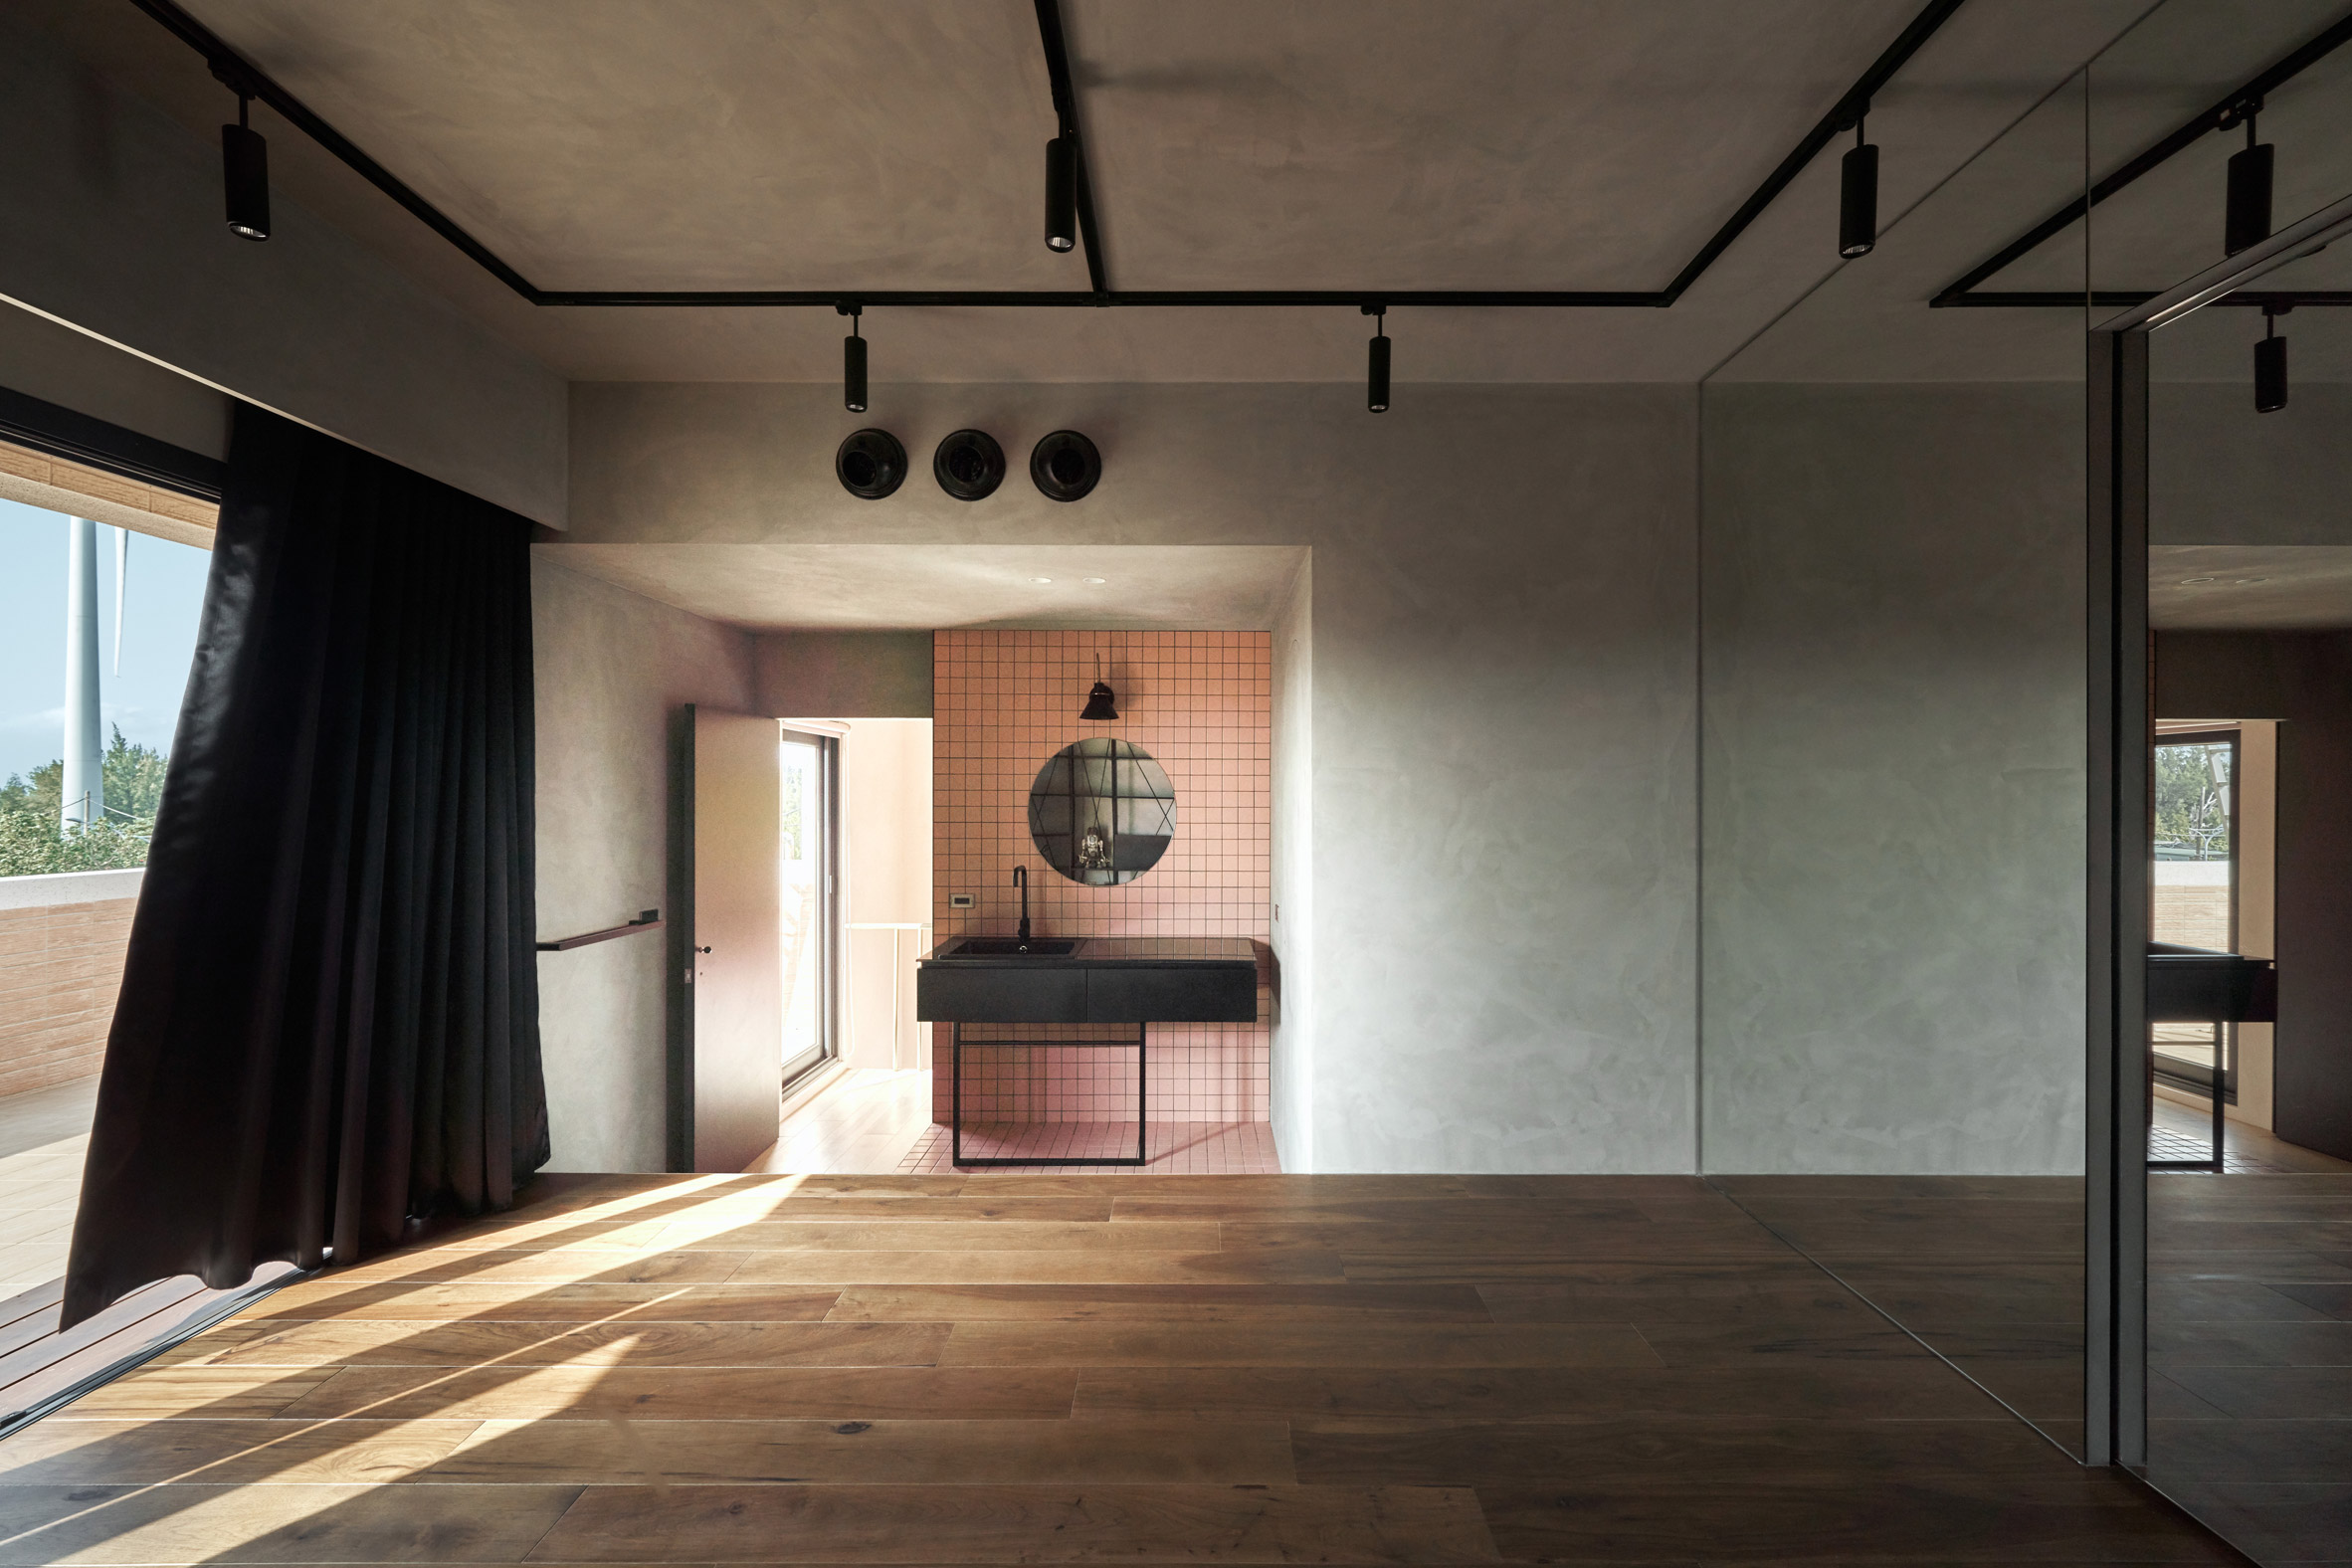 the-pink-house-kc-design-studio-holiday-home-taiwan_dezeen_2364_col_12.jpg